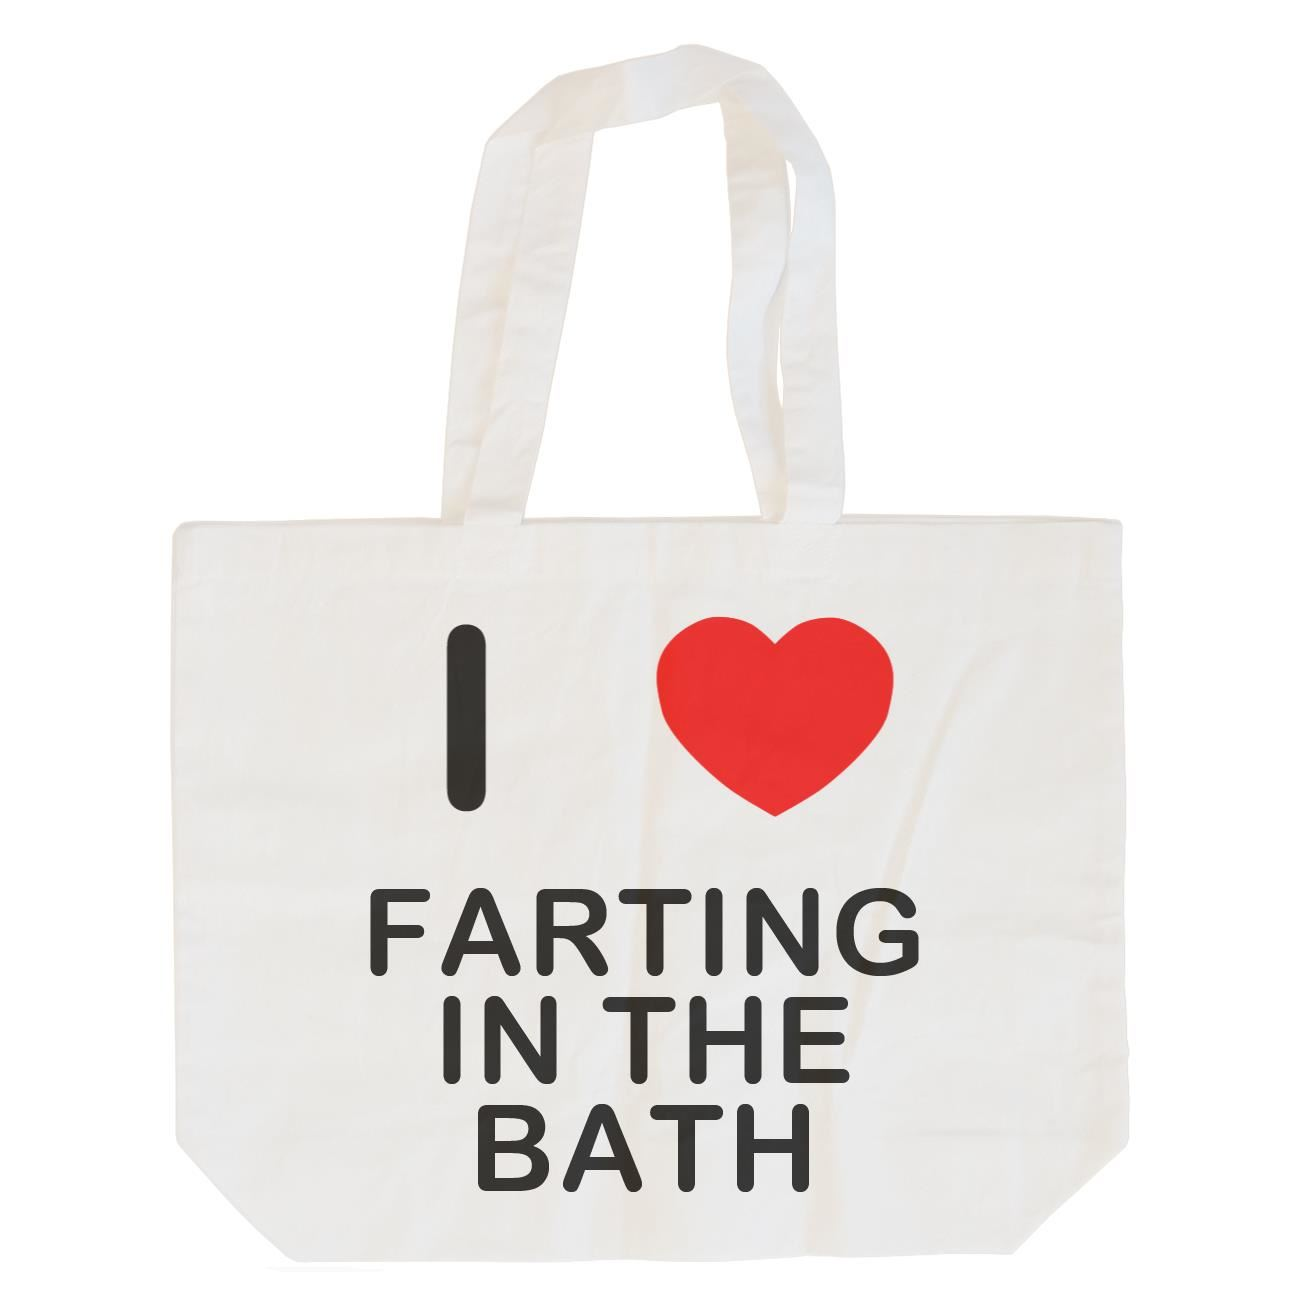 I Love Farting In The Bath - Cotton Bag | Size choice Tote, Shopper or Sling